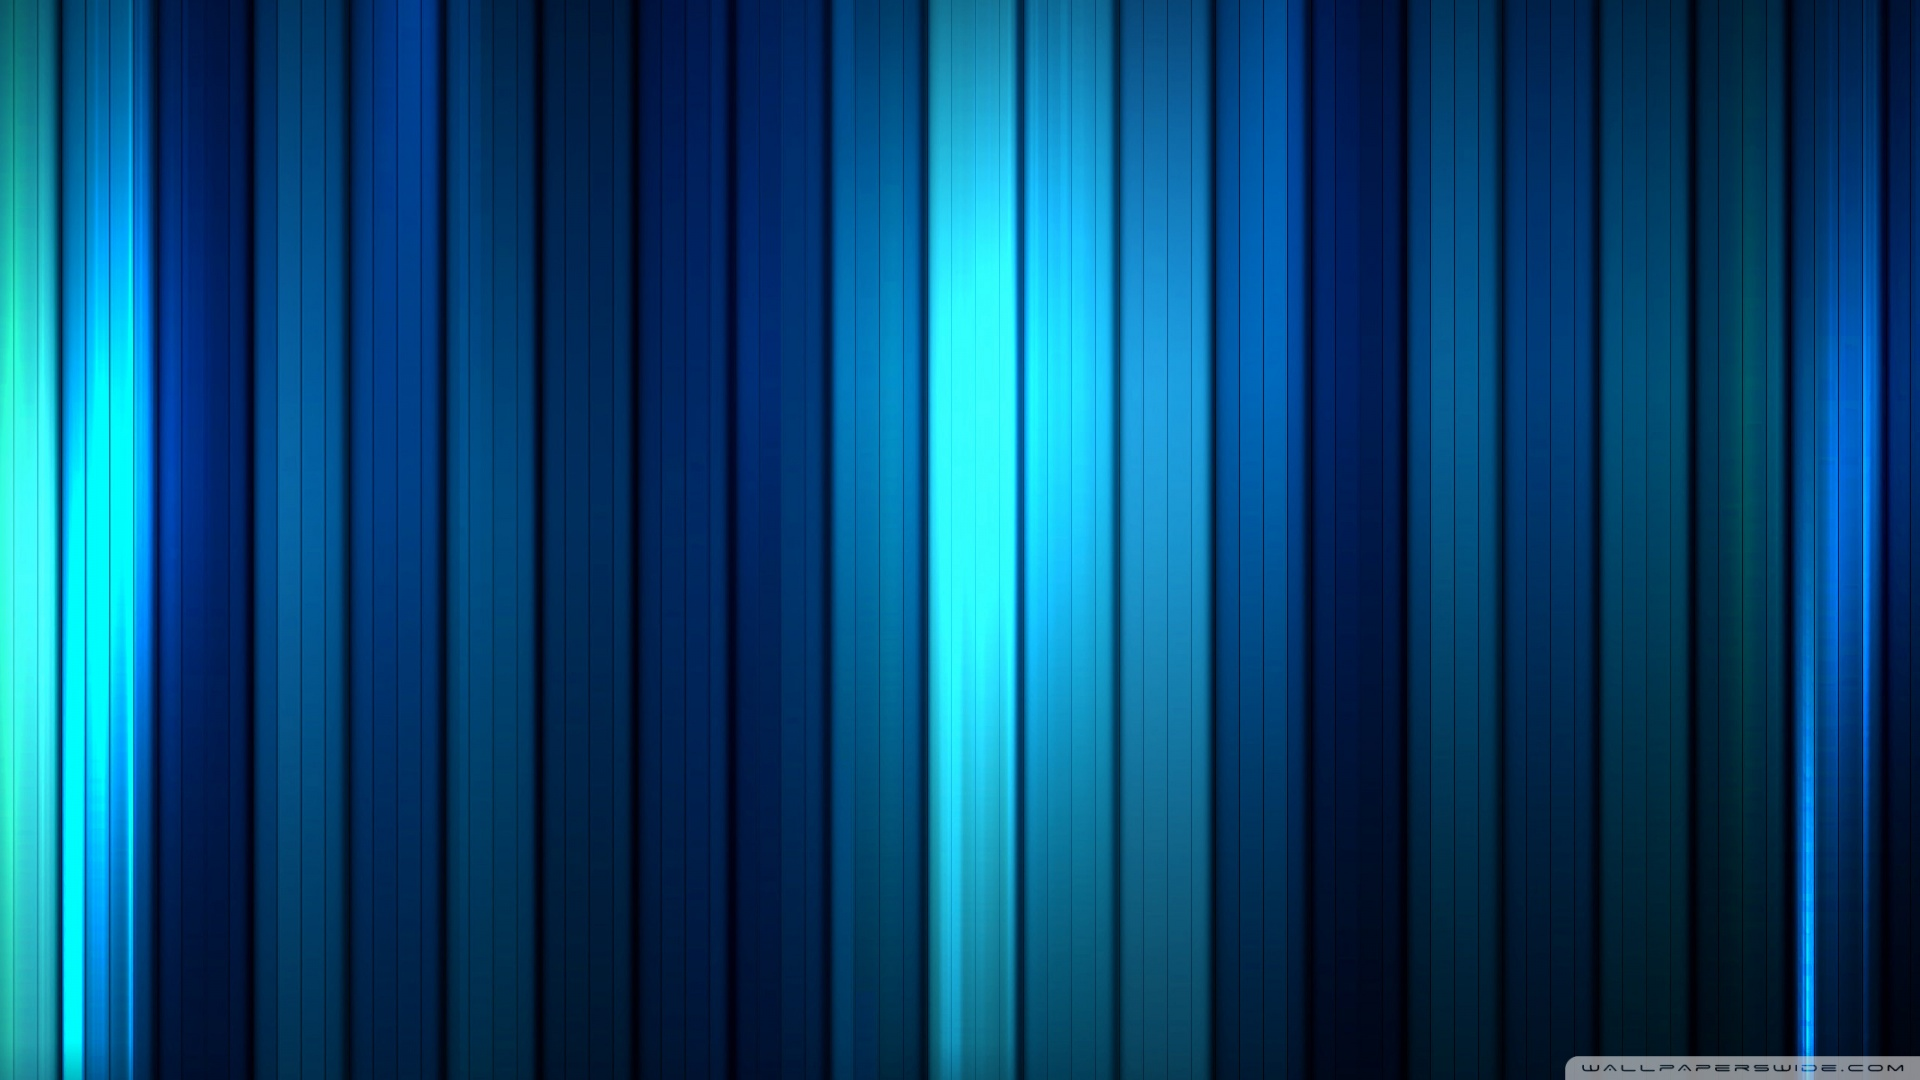 1920x1080 blue wallpaper: Blue 1920x1080 Wallpaper